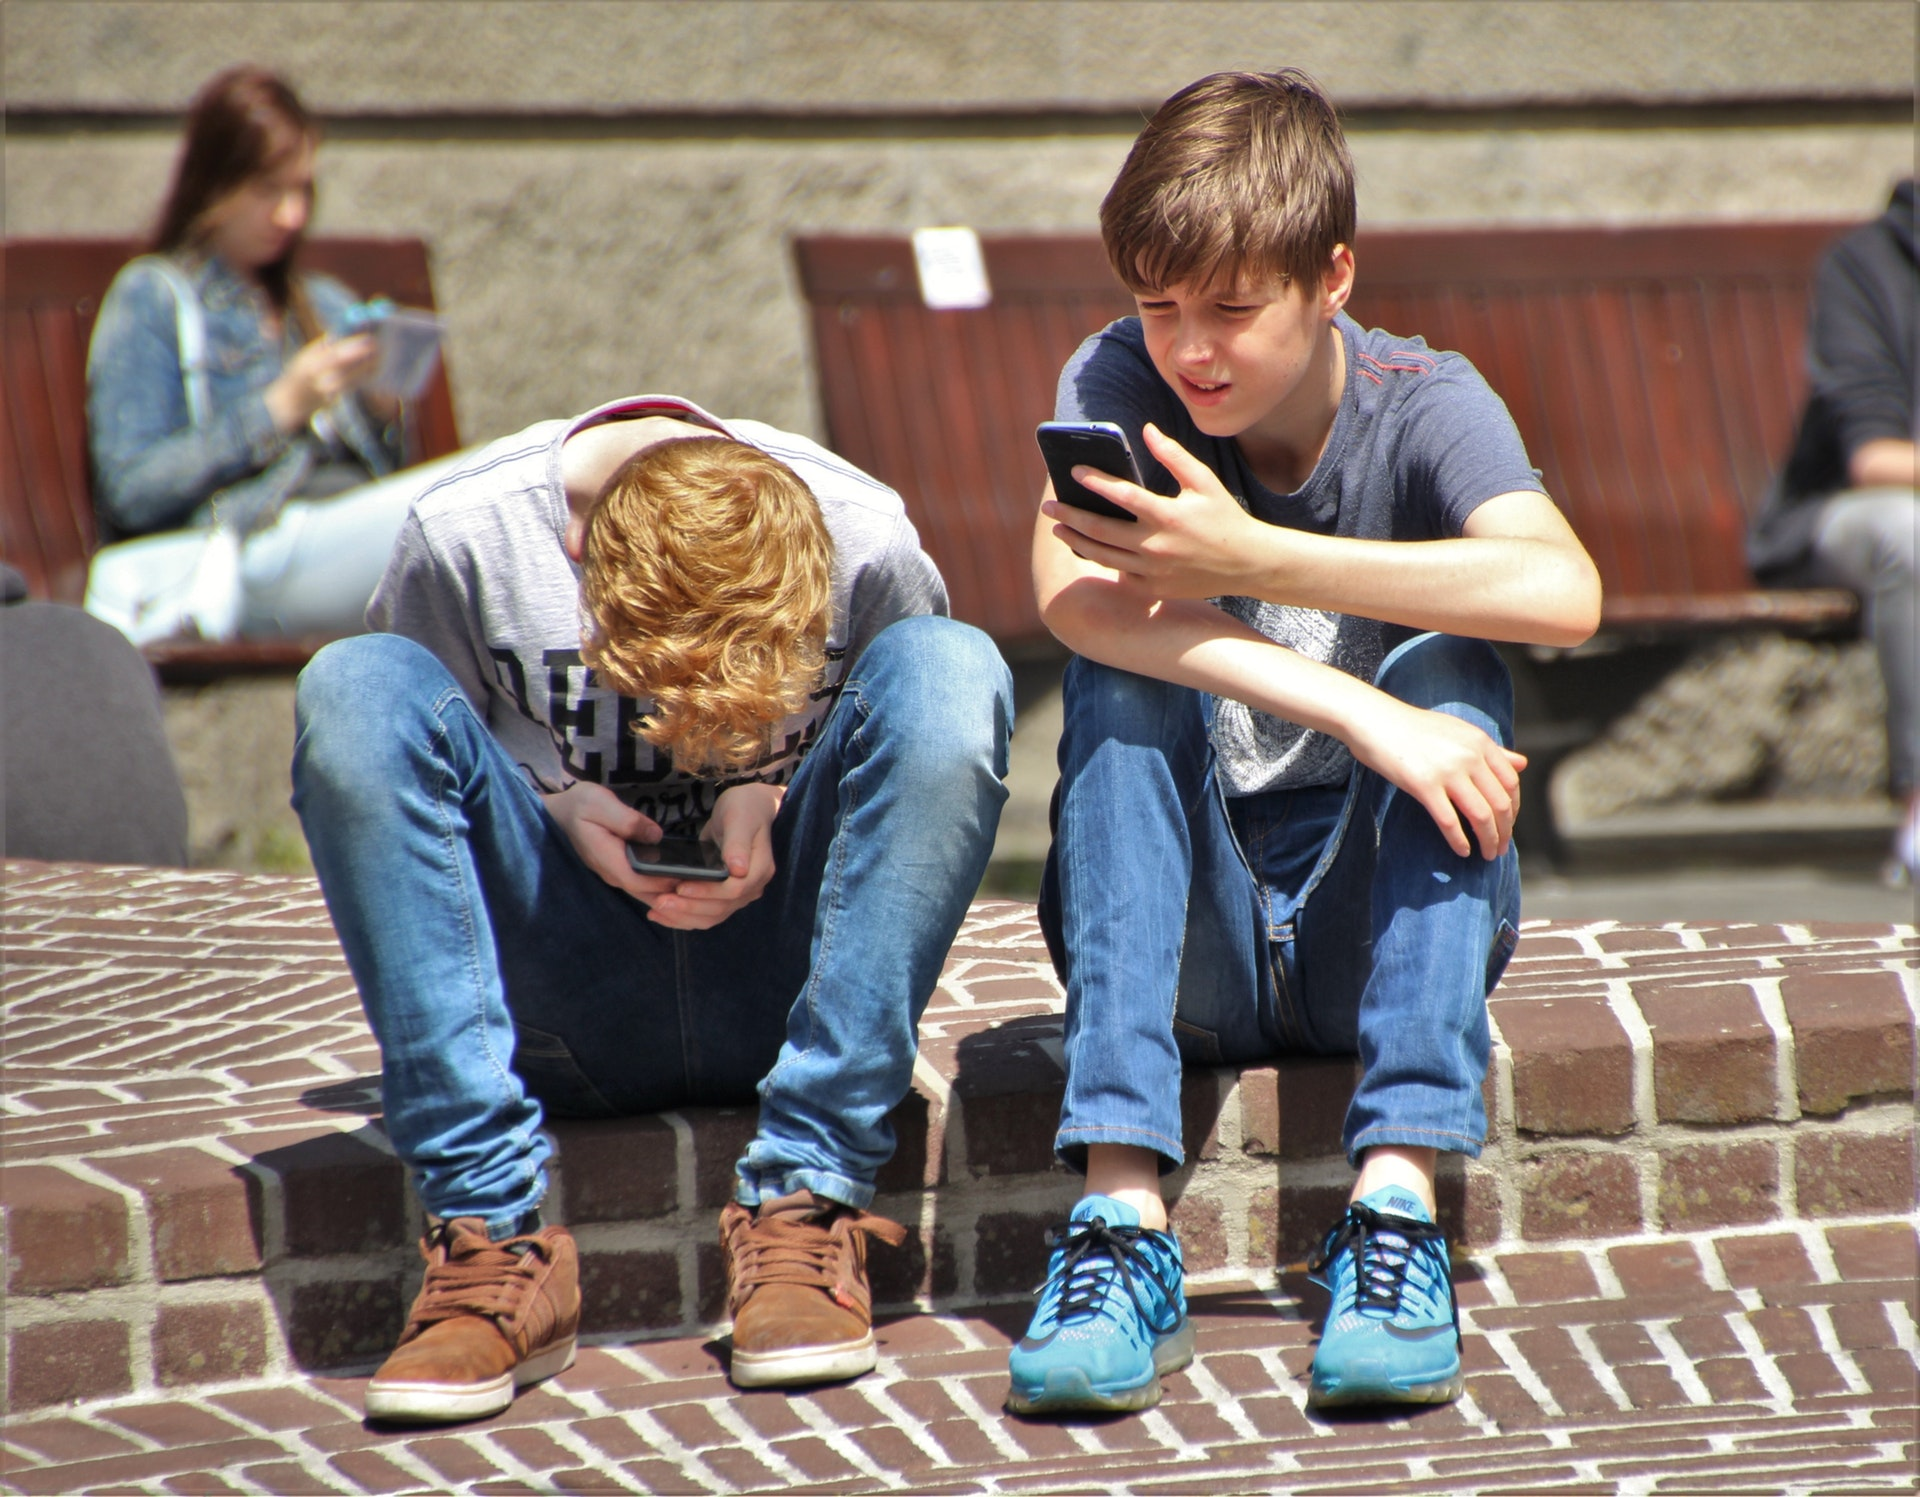 Dangers of Smartphones on Children That A Mobile Phone Monitoring App Can Prevent